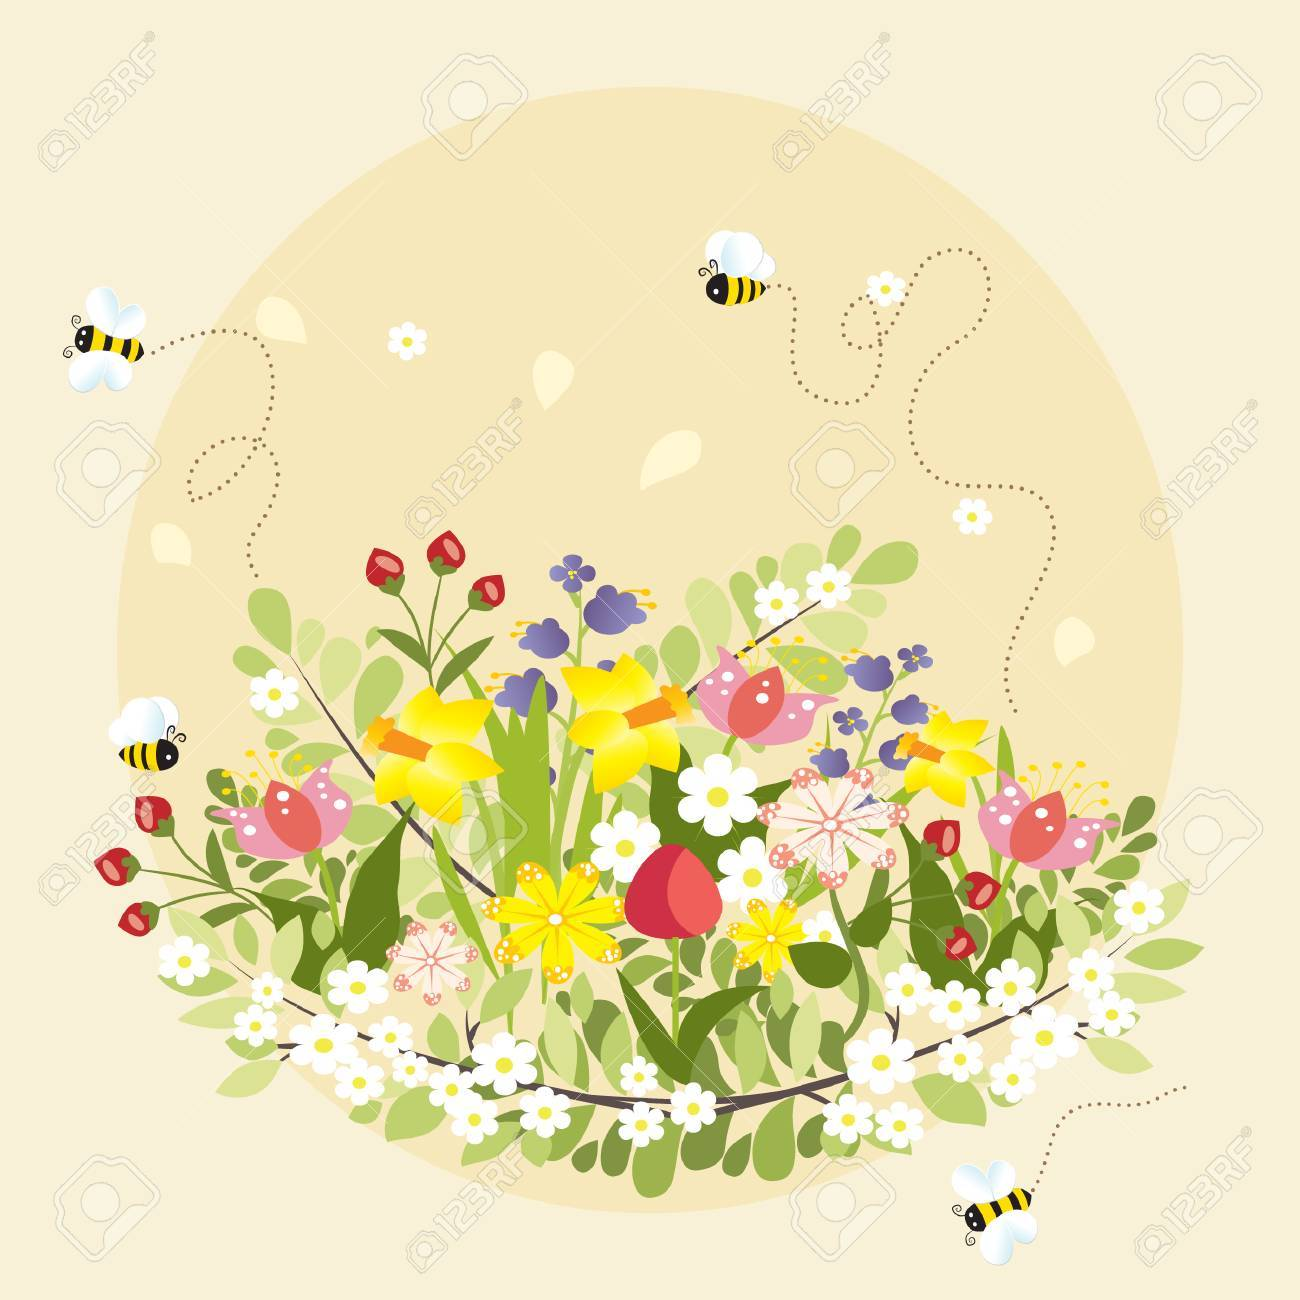 Spring Flowers Beautiful Bee Cartoon Vector Illustration Royalty